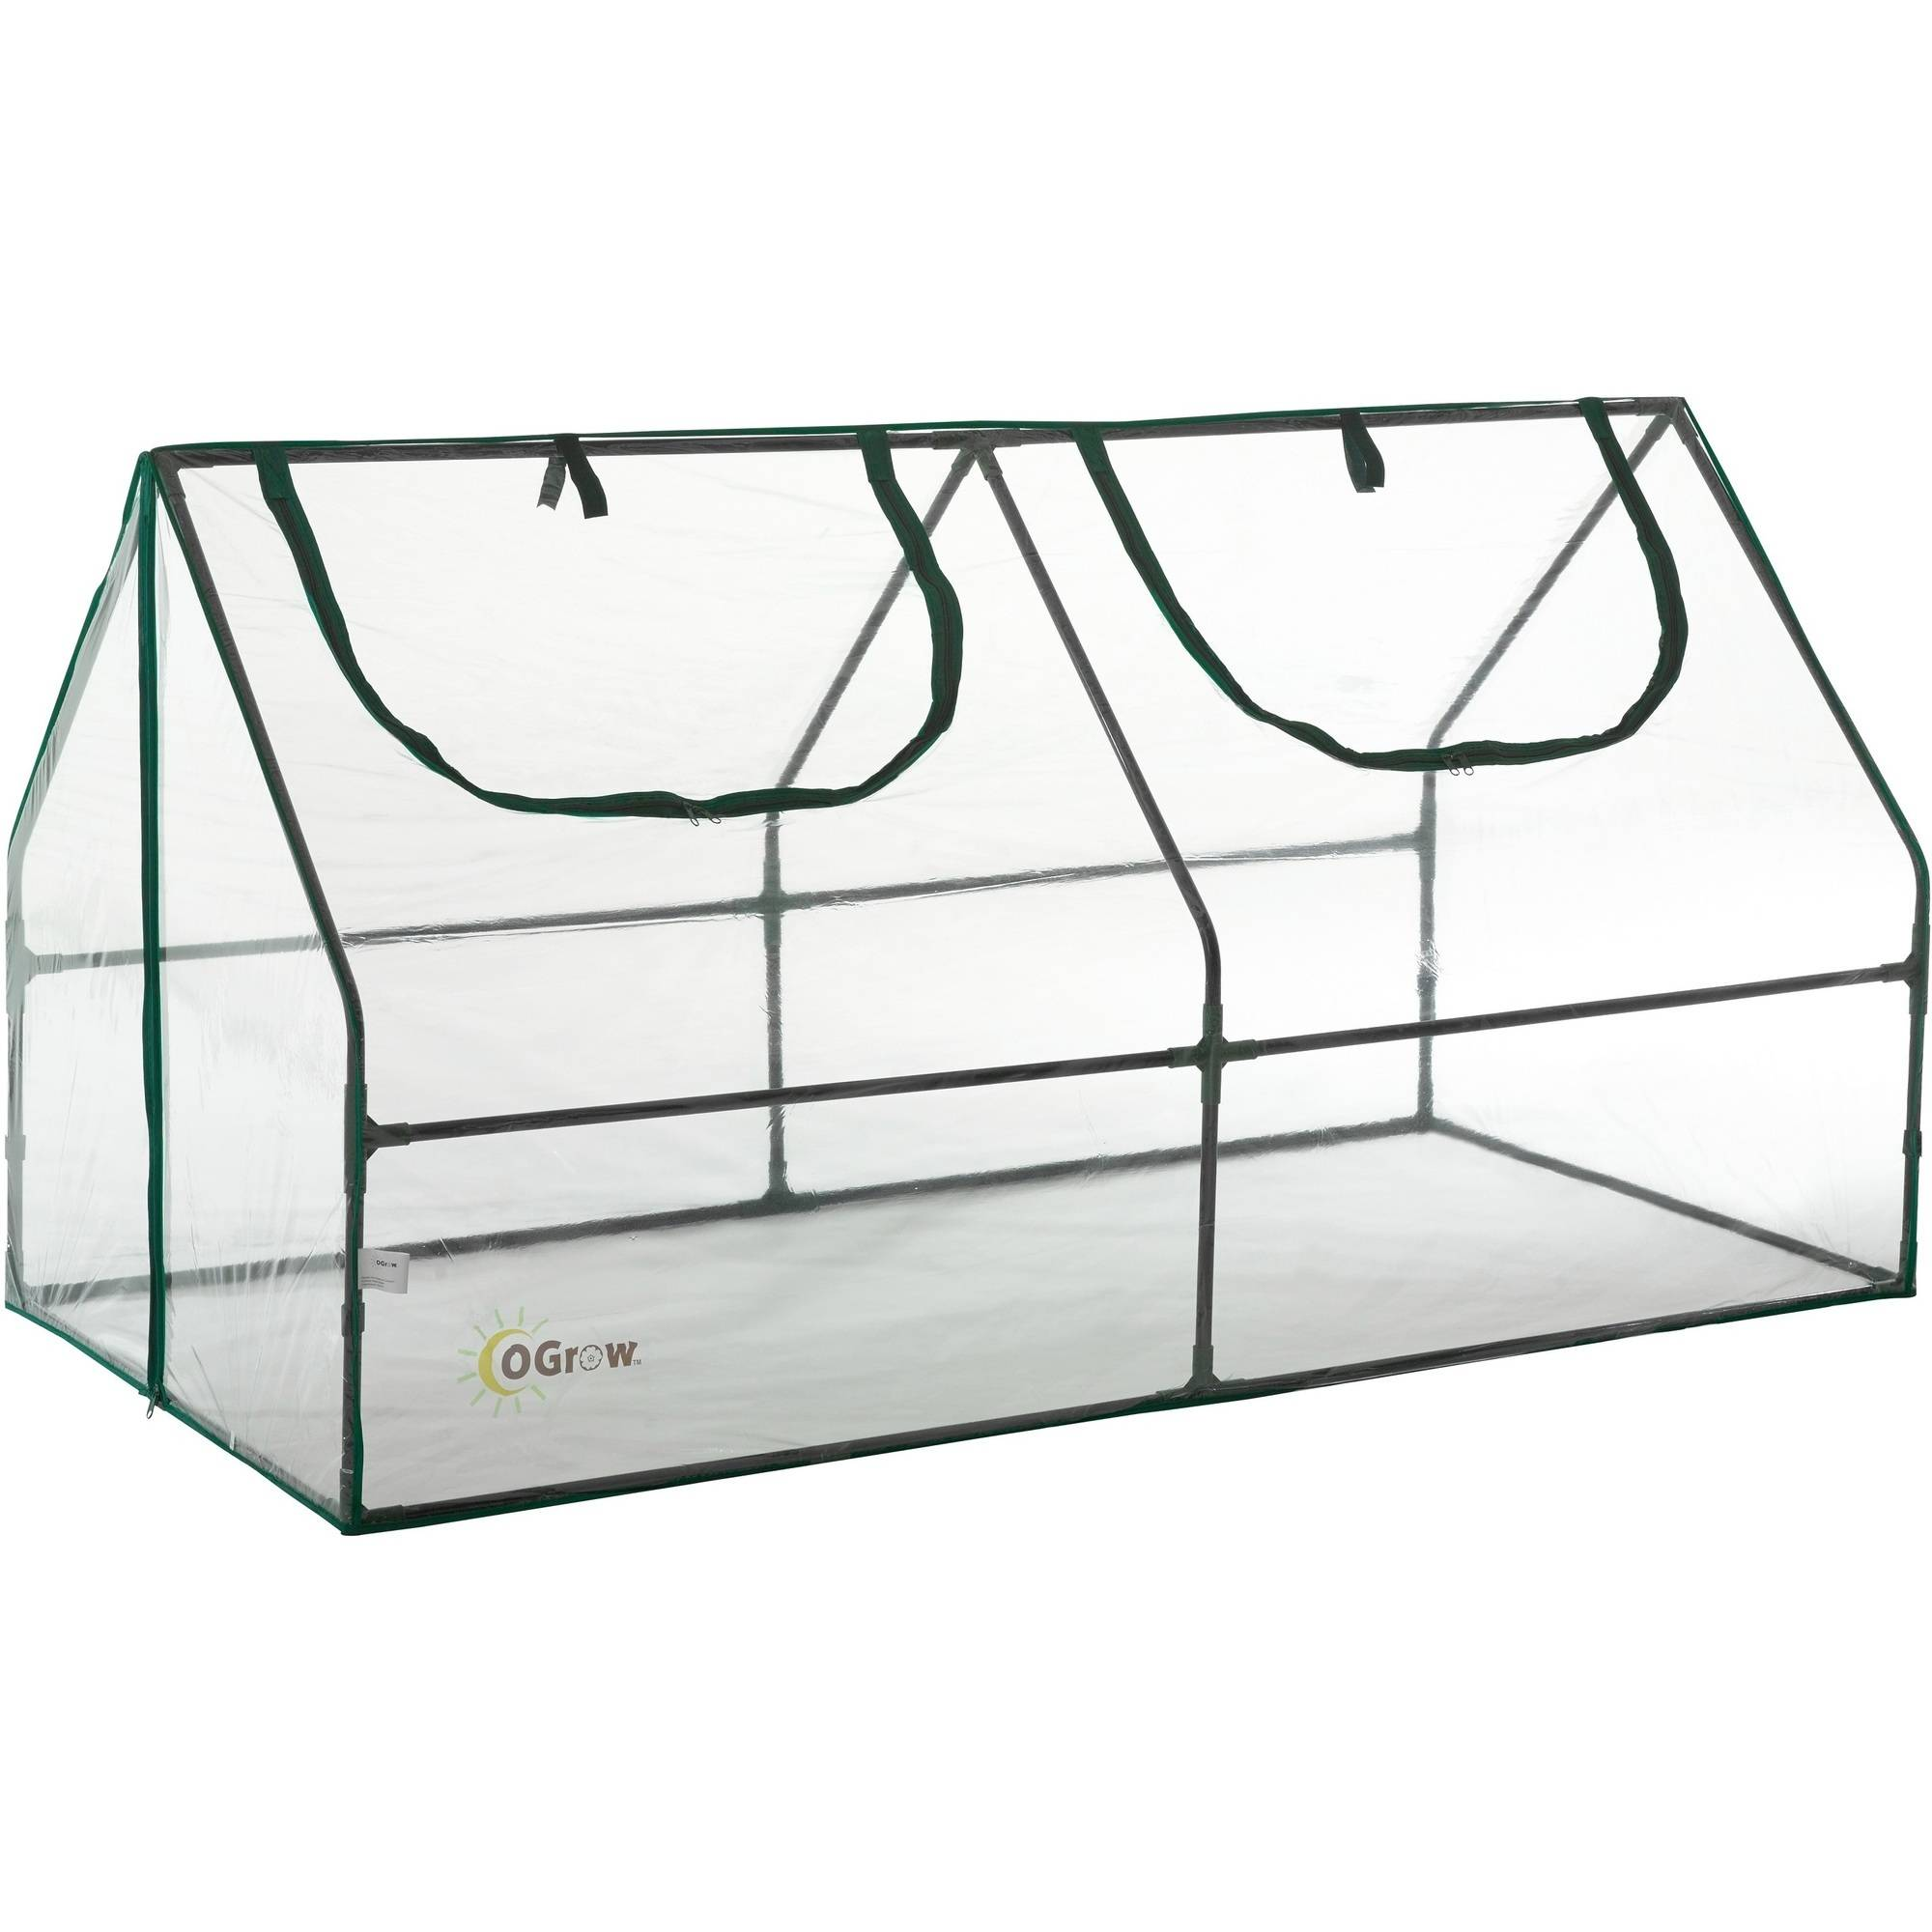 Ogrow Ultra Deluxe Compact Outdoor Seed Starter Greenhouse Cloche by KSH Brands